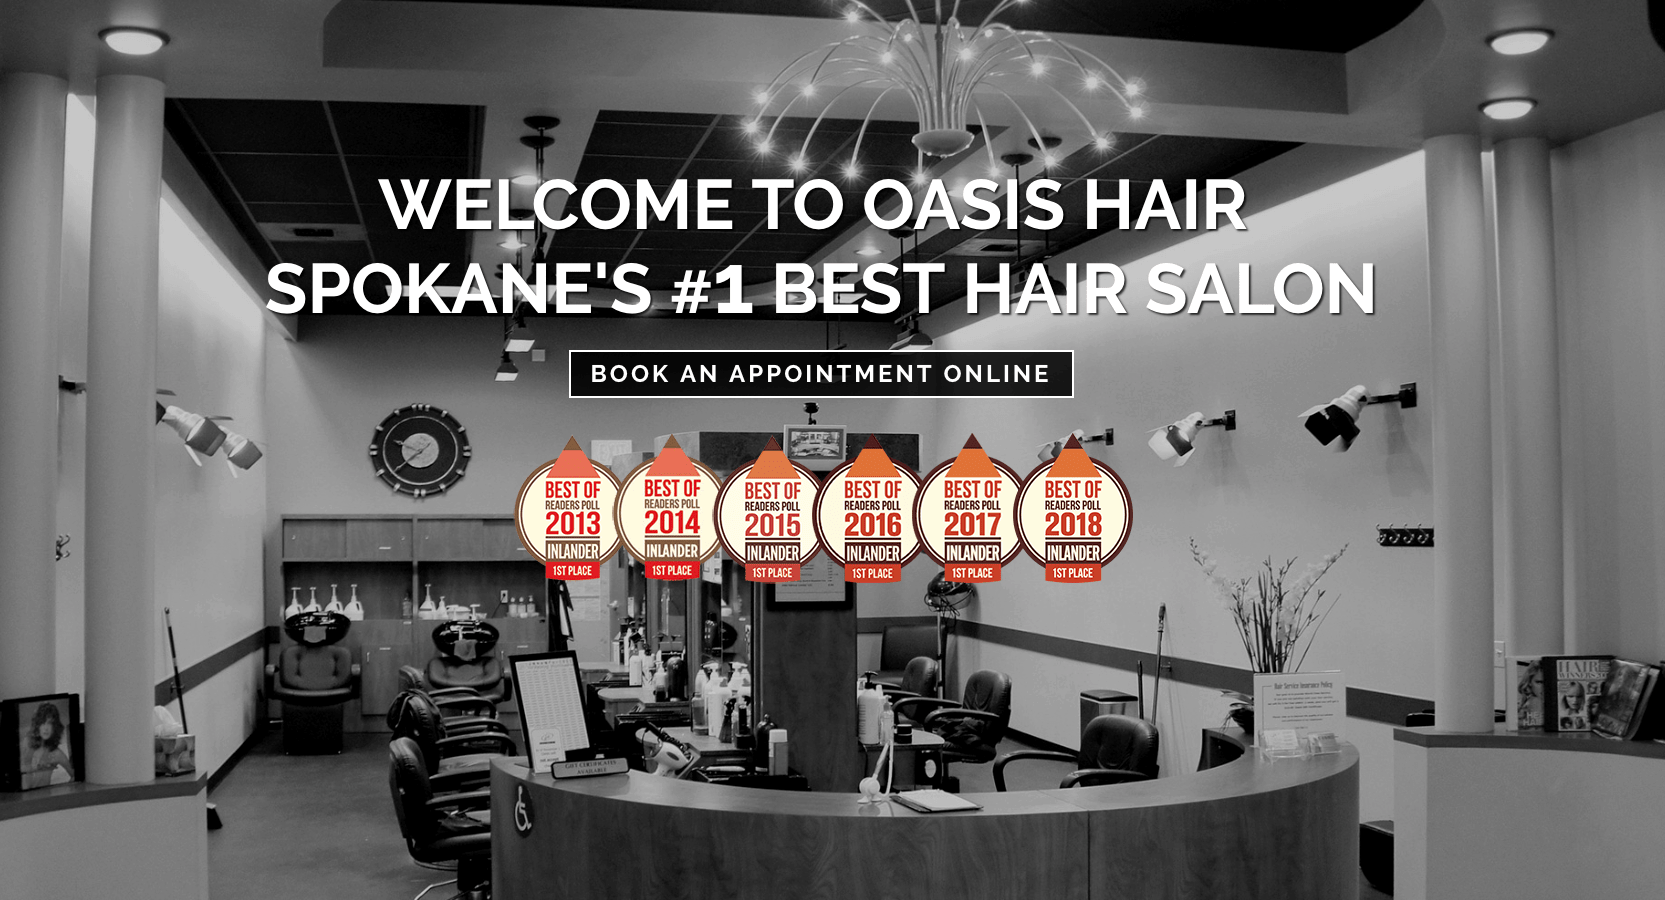 Oasis Hair in Spokane